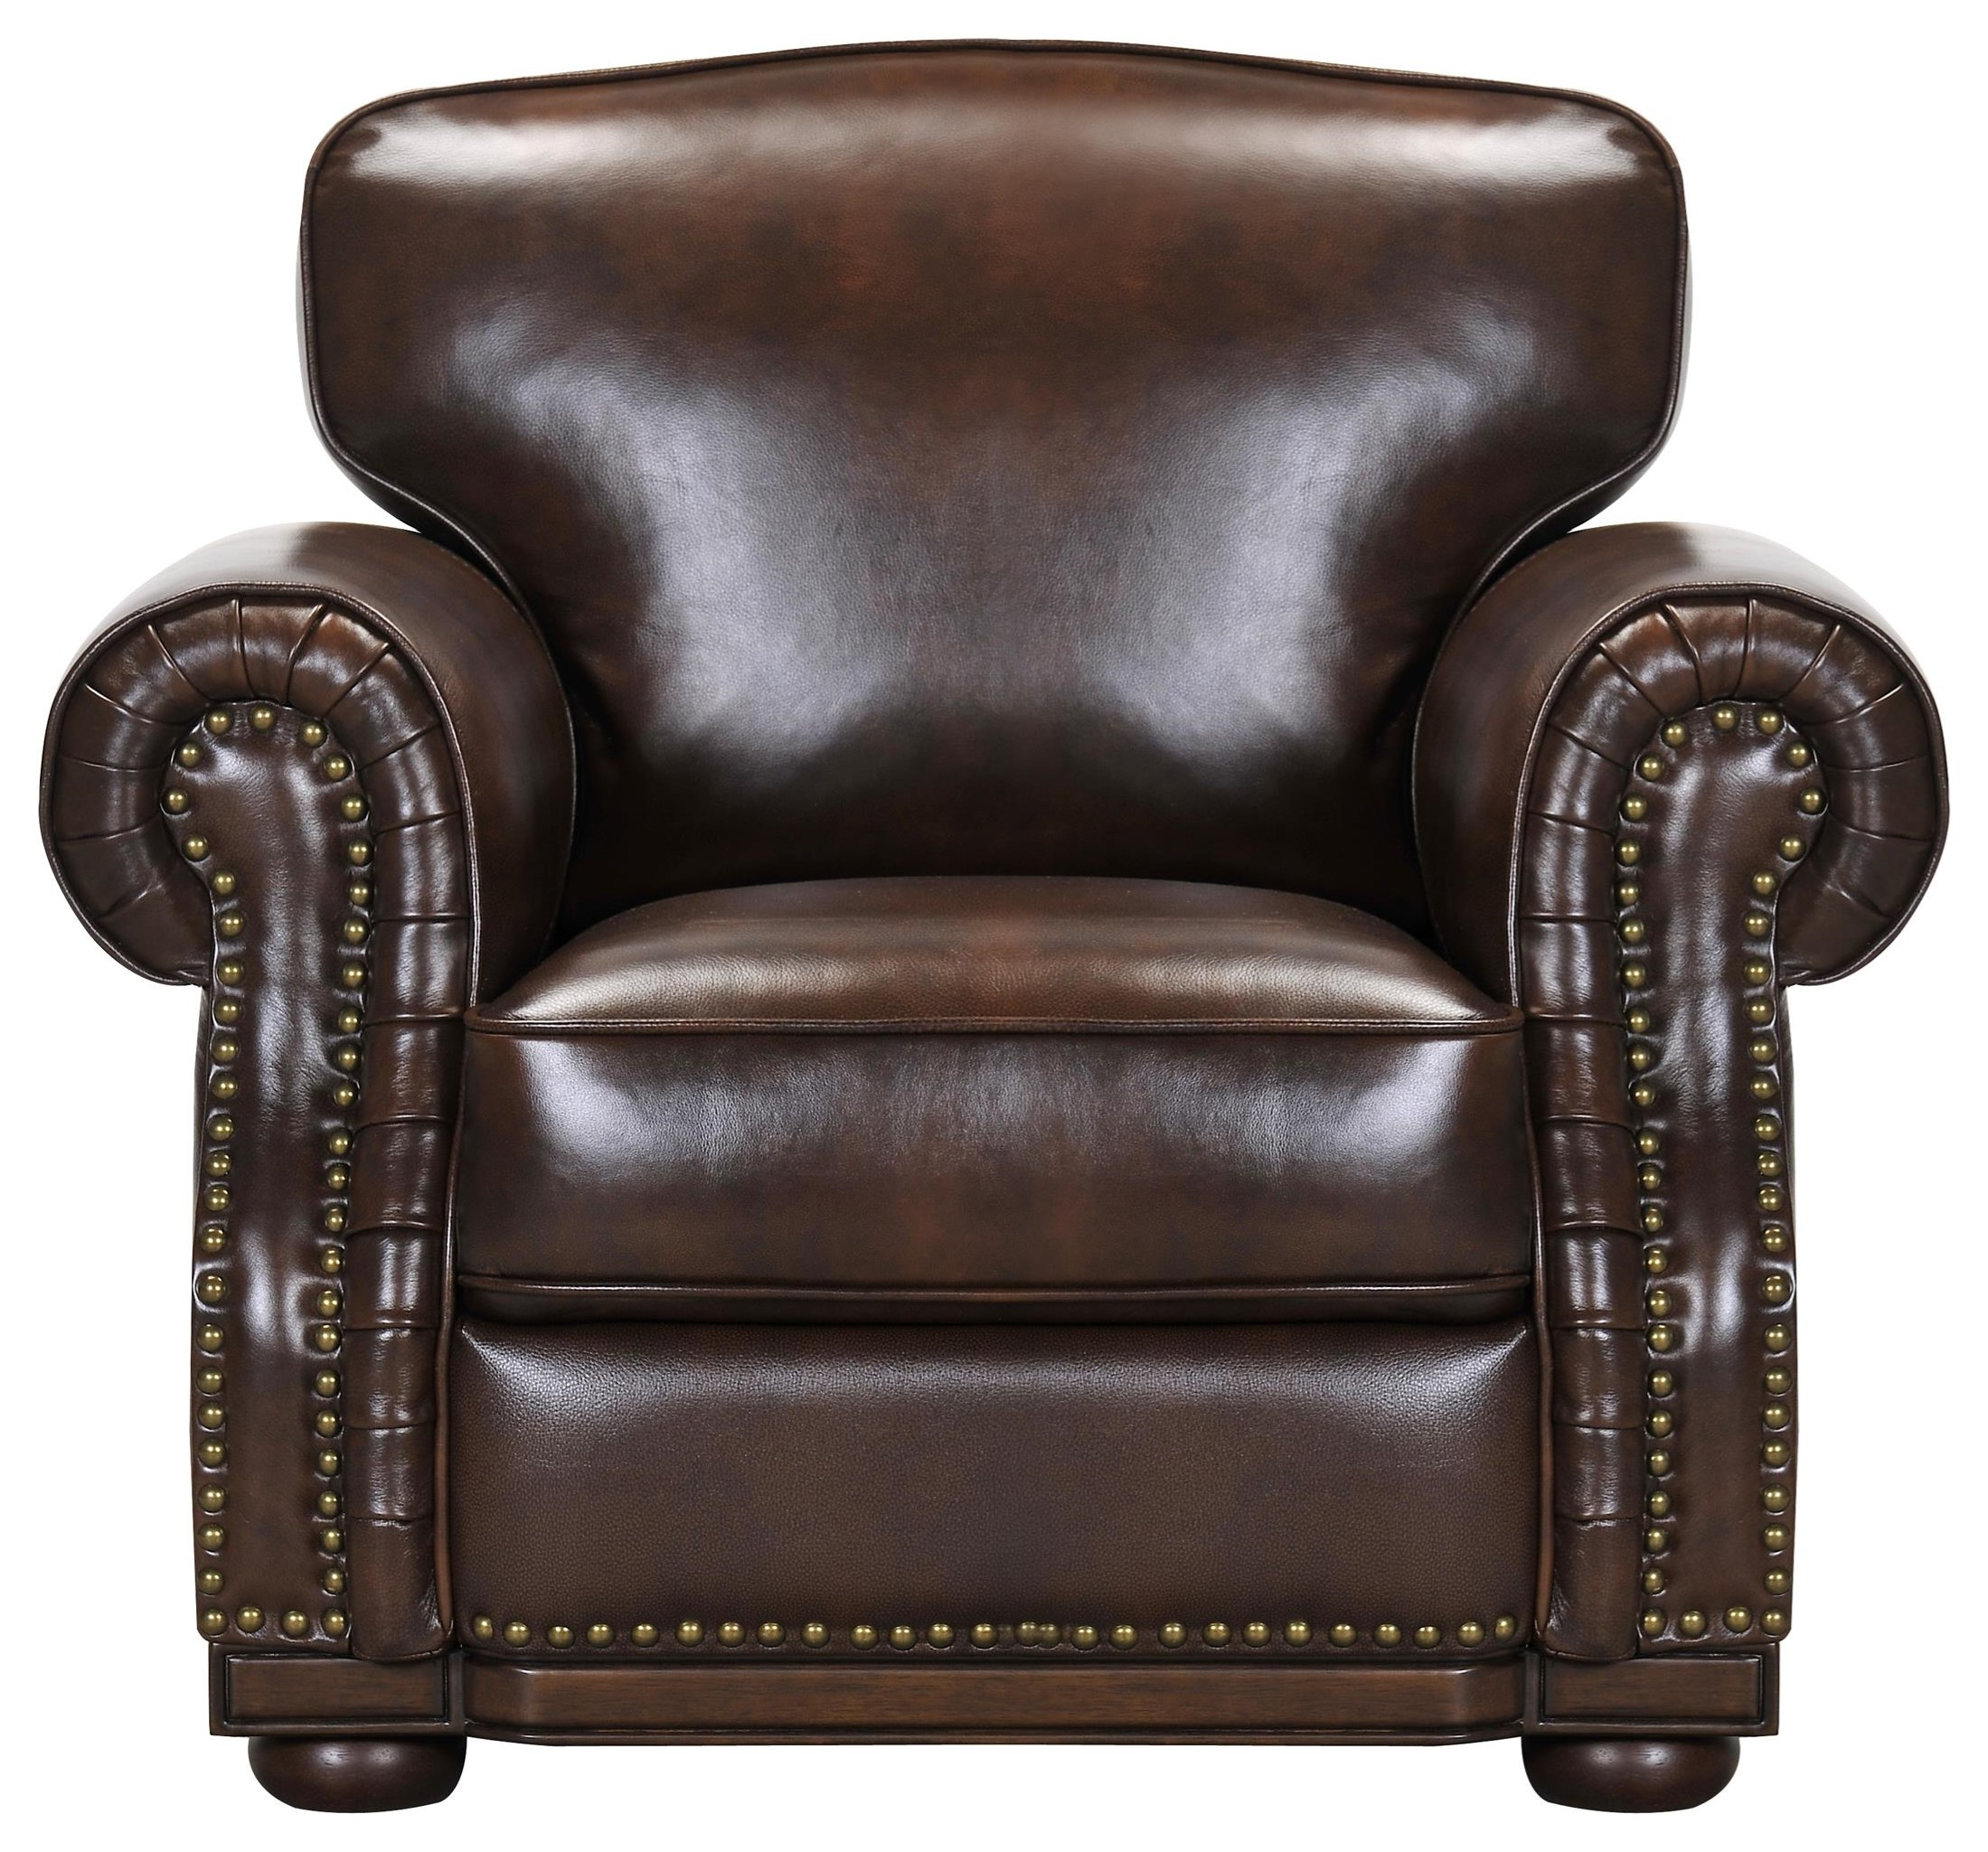 3110 Leather Match Chair by Violino at Darvin Furniture